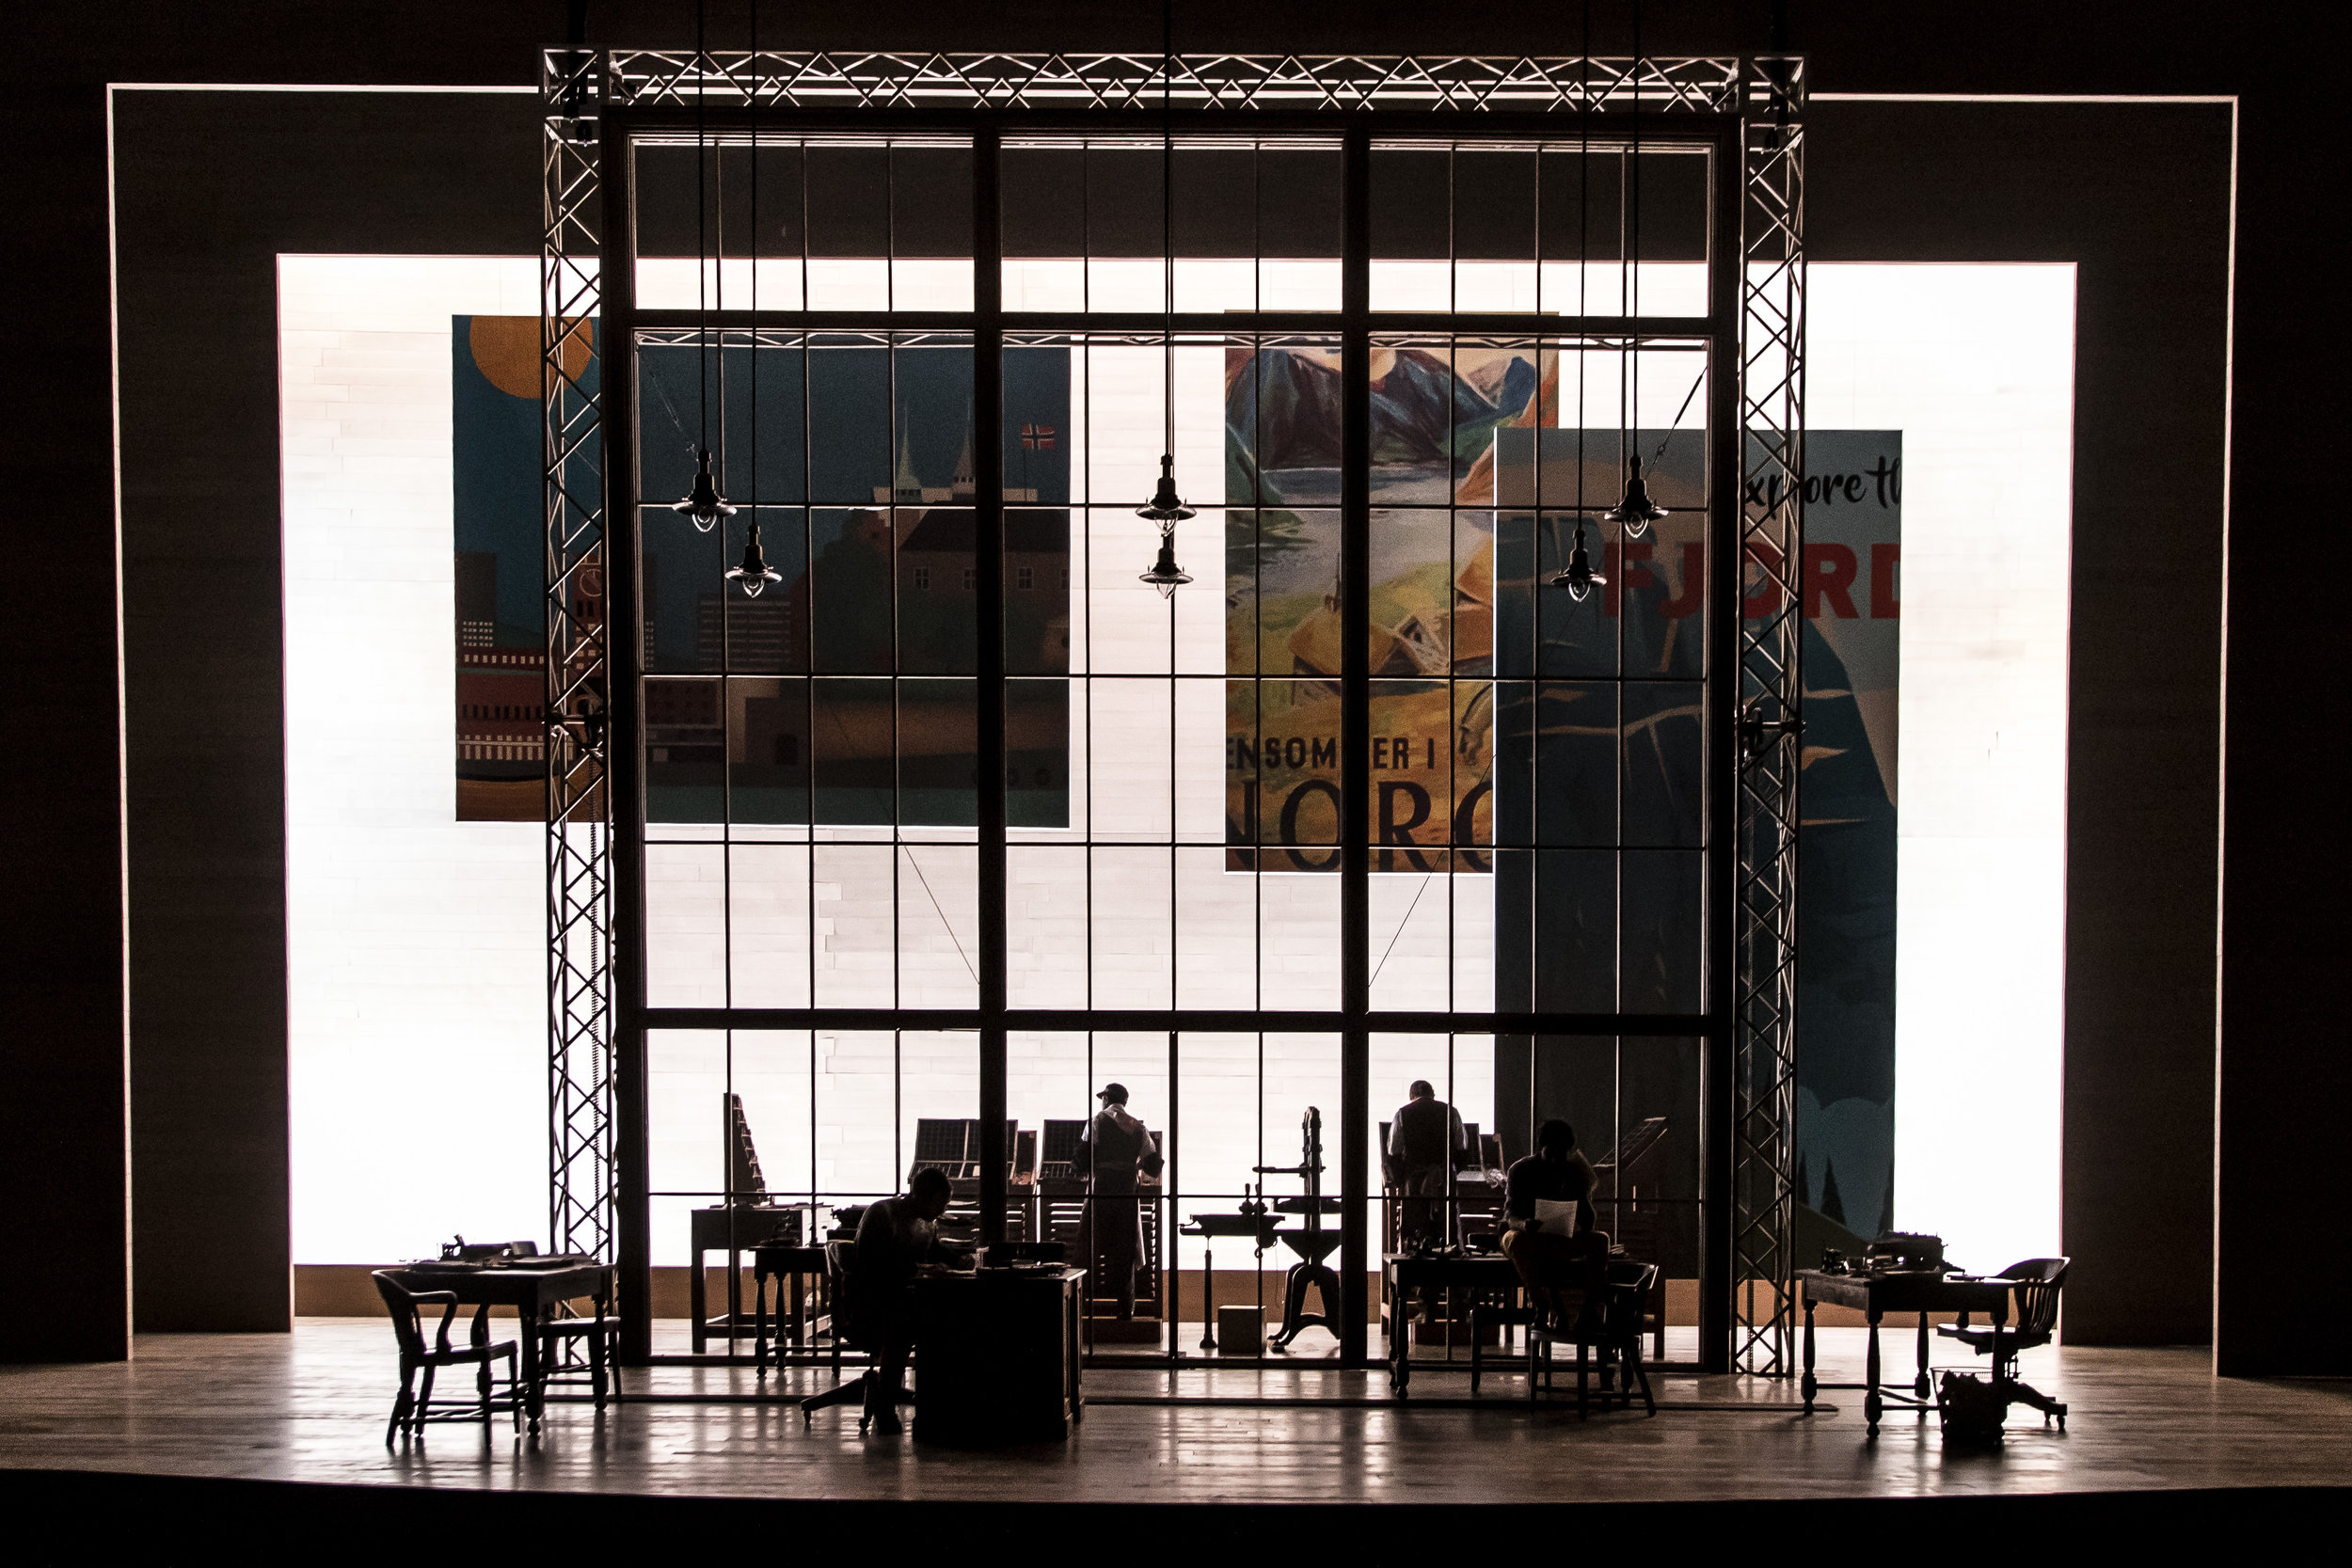 Set for Goodman Theatre's AN ENEMY OF THE PEOPLE